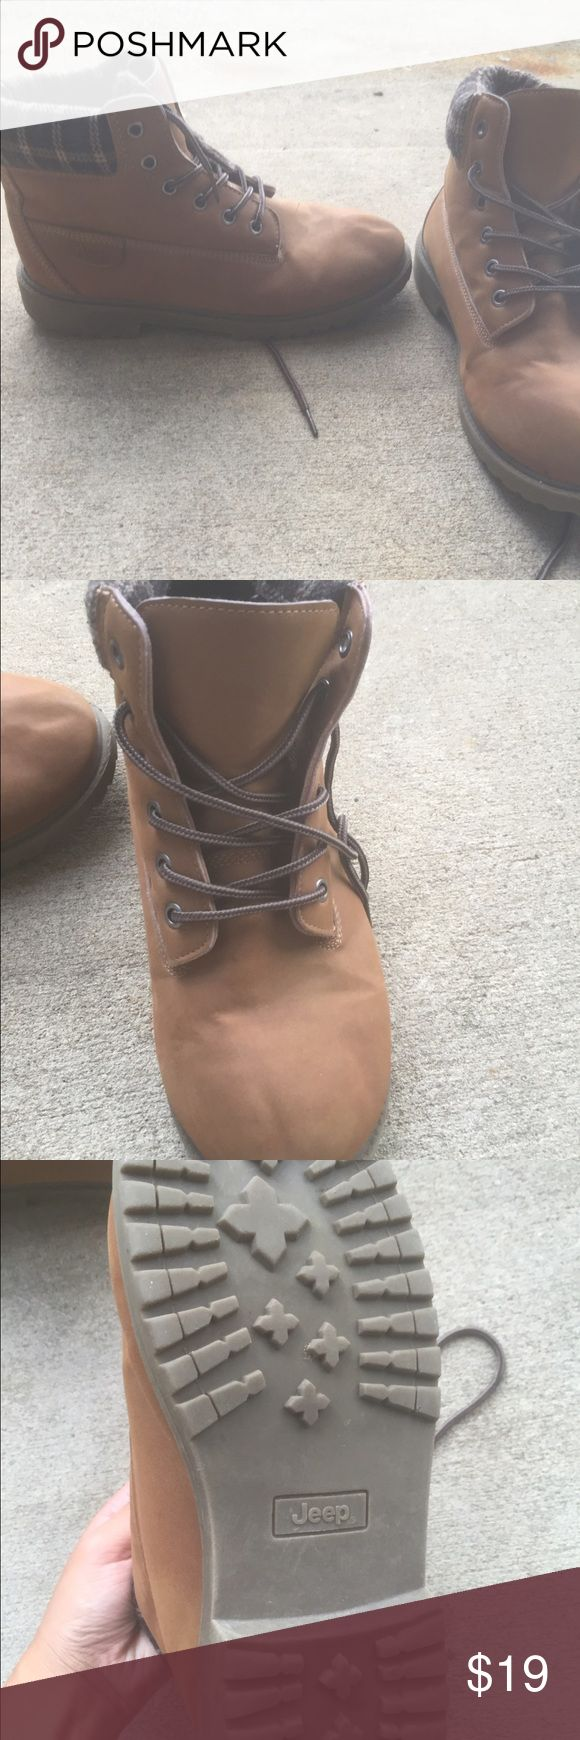 Jeep Boots  Barely worn Jeep Boots! See picture for the bottom of the shoe! Got as a gift and were too big for me. Says men's size 5 but I'd say fits like a women's 7.5. Soooo cute especially with shorts or in the winter. Note: they are lighter in weight than timberlands which is nice Jeep Shoes